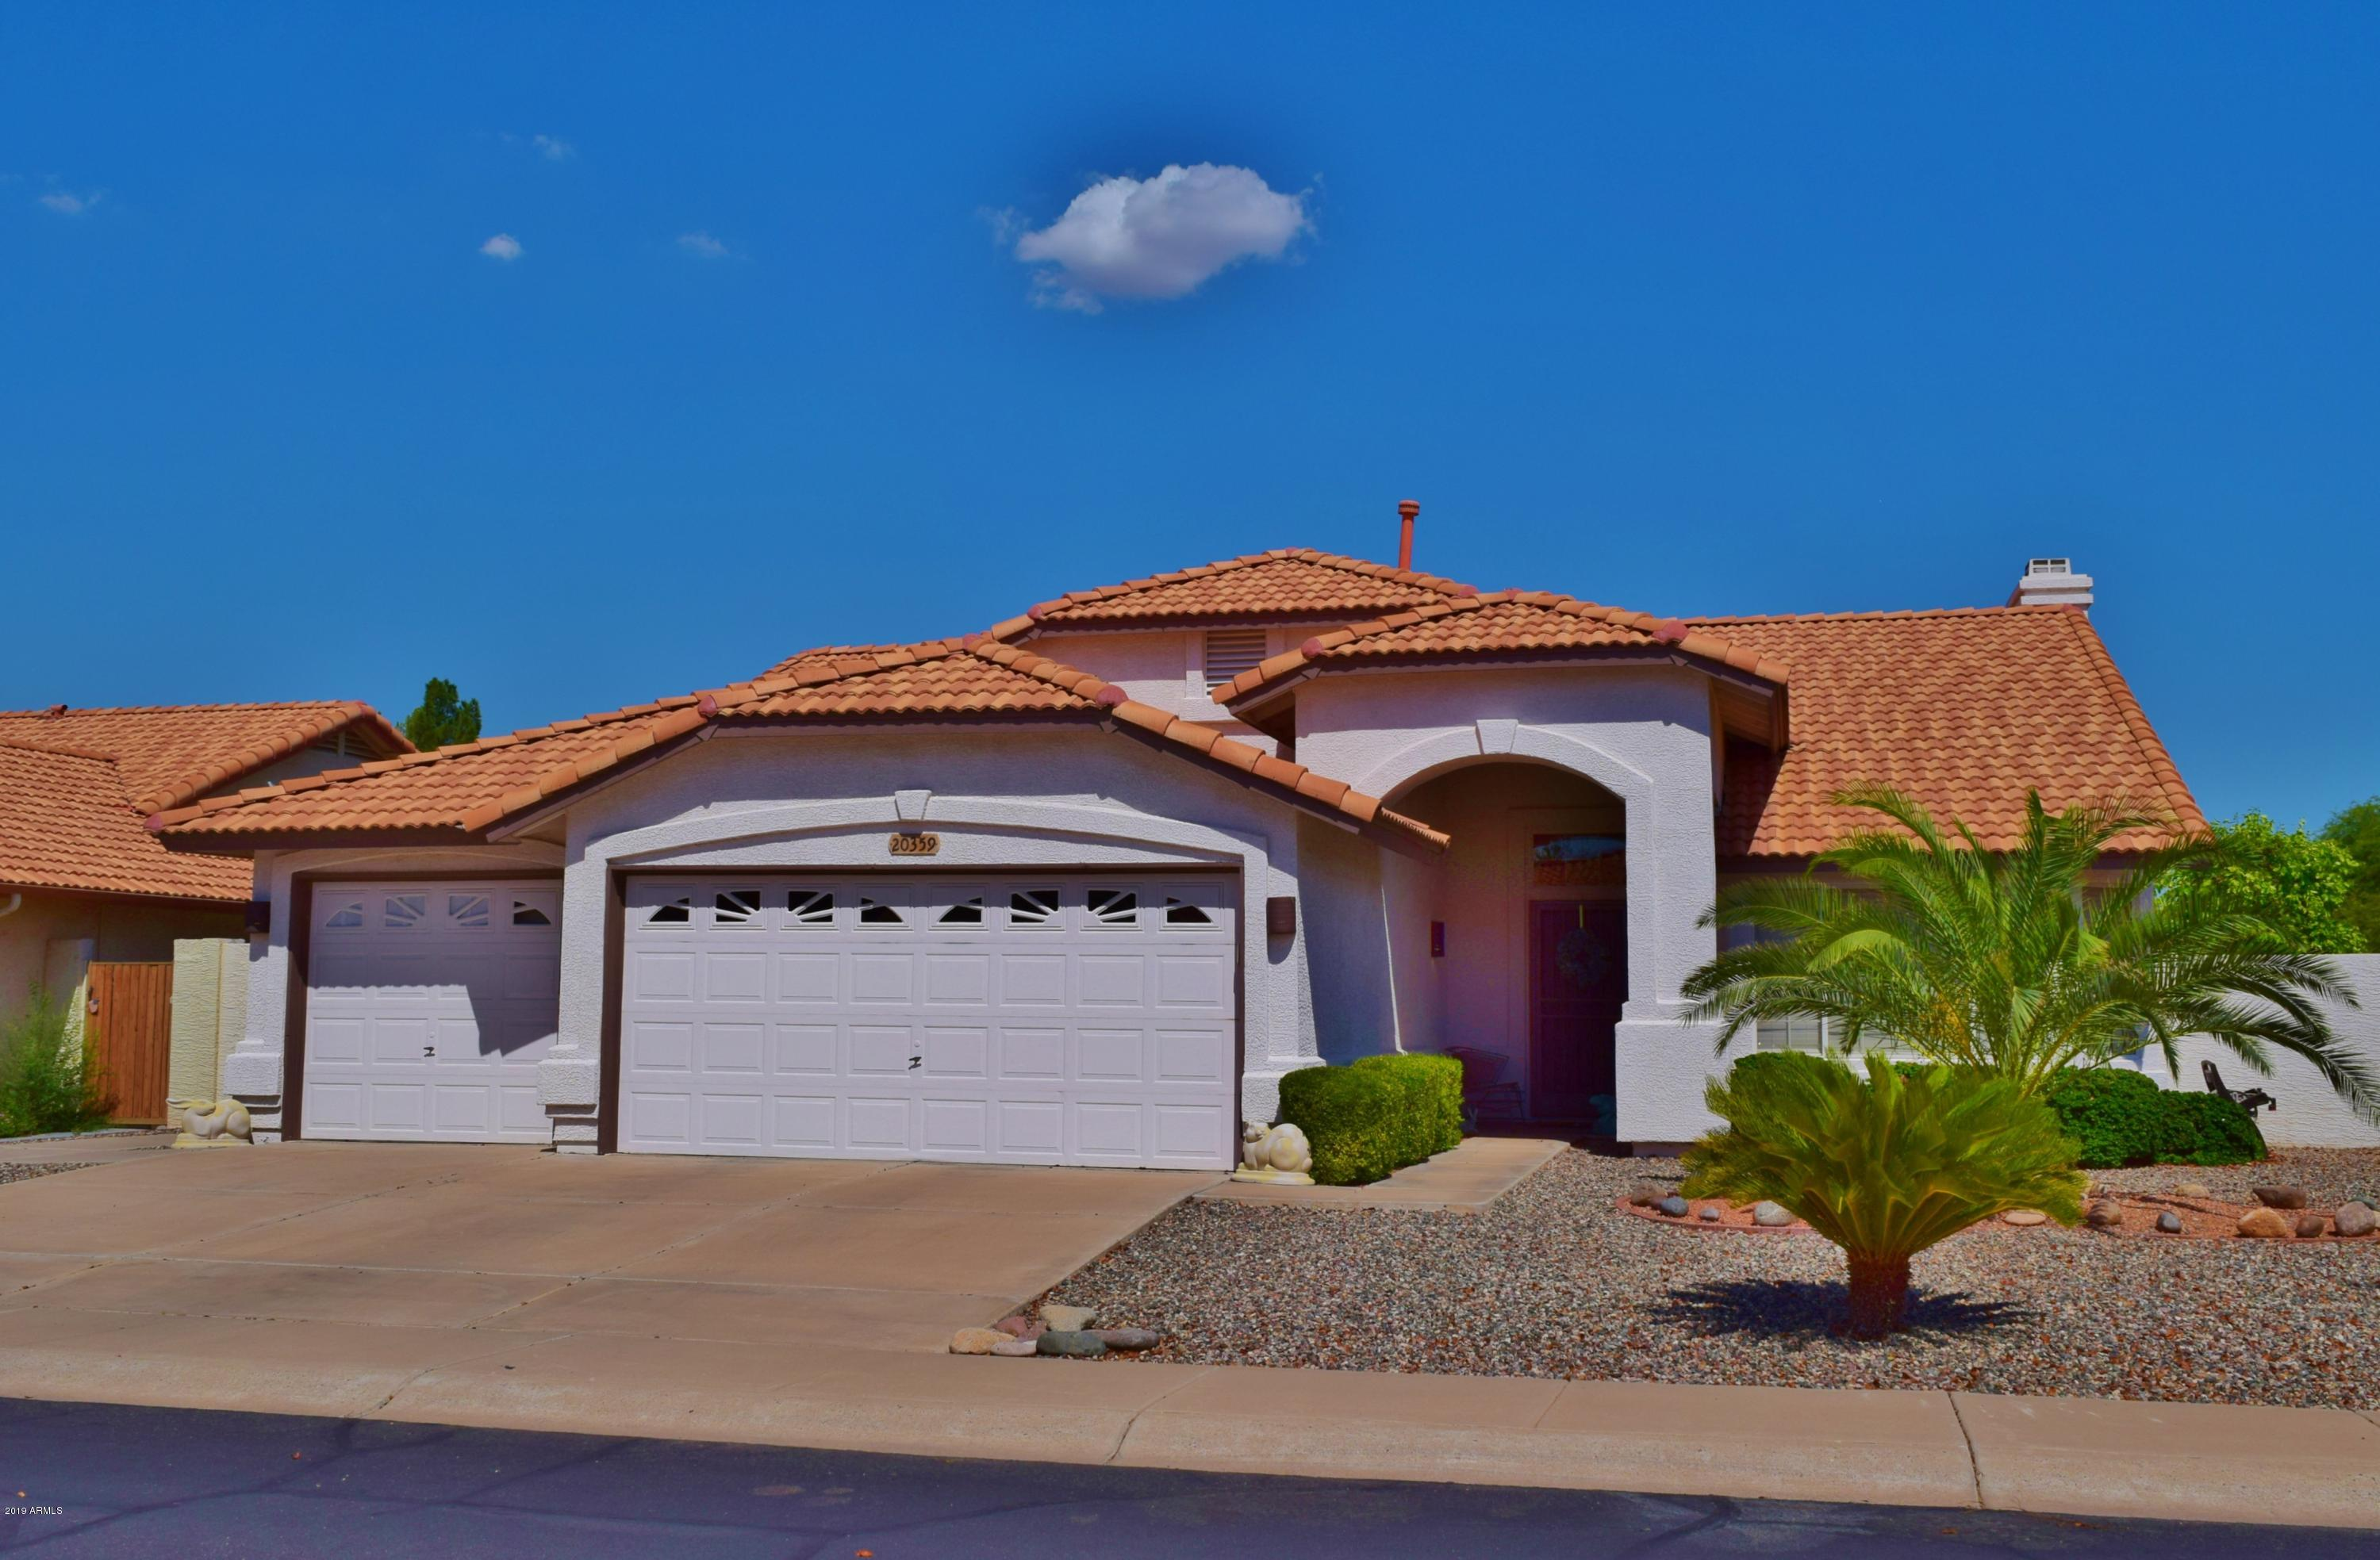 MLS 5957991 20359 N 109TH Drive, Sun City, AZ 85373 Sun City AZ Three Bedroom